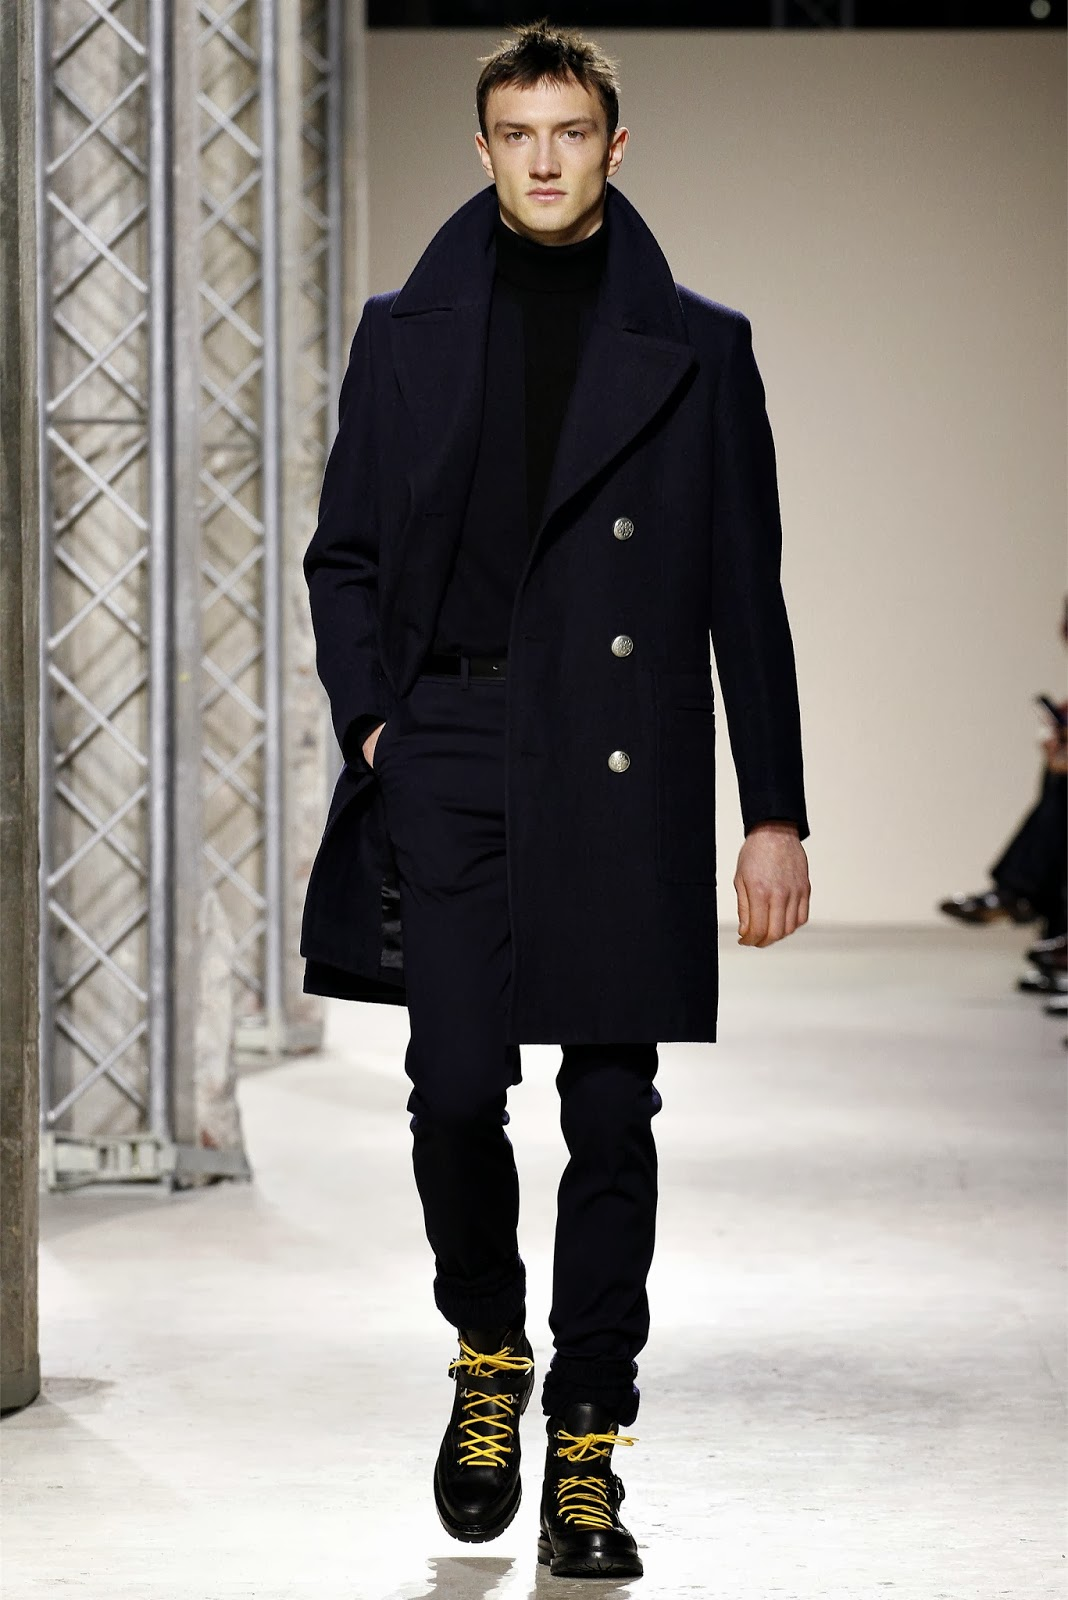 Adi Surantha In Fashion Week Report Fall Winter 20013 2014 Jajaka Louis